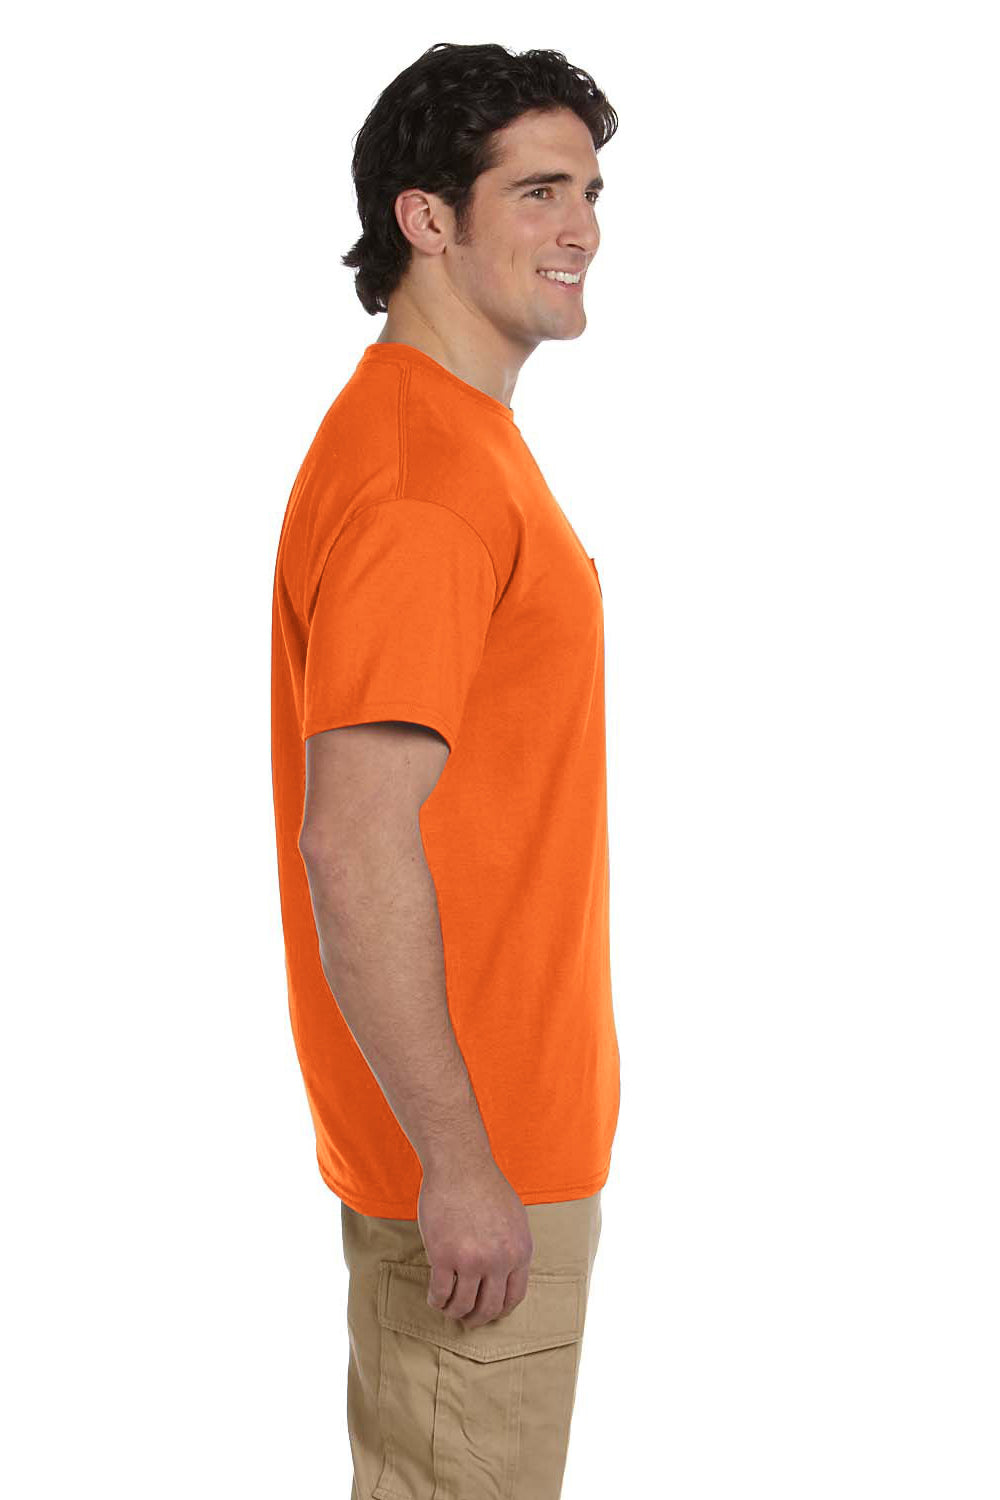 Gildan G830 Mens DryBlend Moisture Wicking Short Sleeve Crewneck T-Shirt w/ Pocket Safety Orange Side